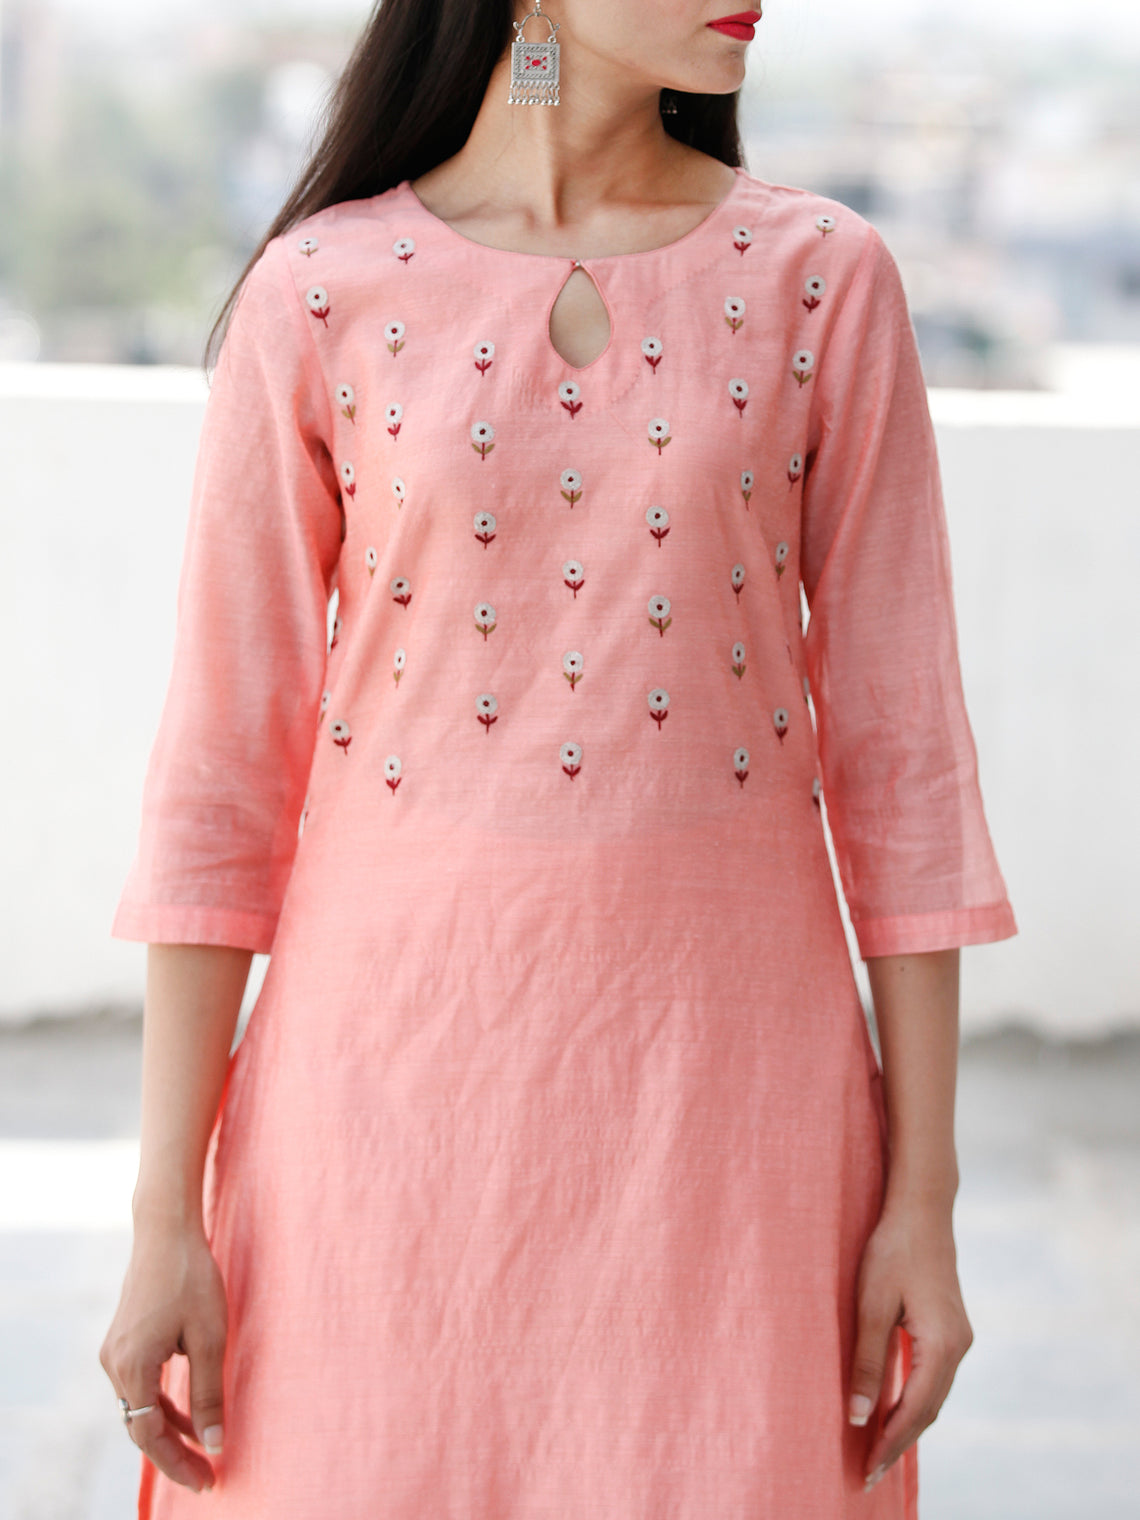 Zari Garden - Peach Silver Chanderi  Kurta & Plazzo Sets  - Set of 2  - SS01F054